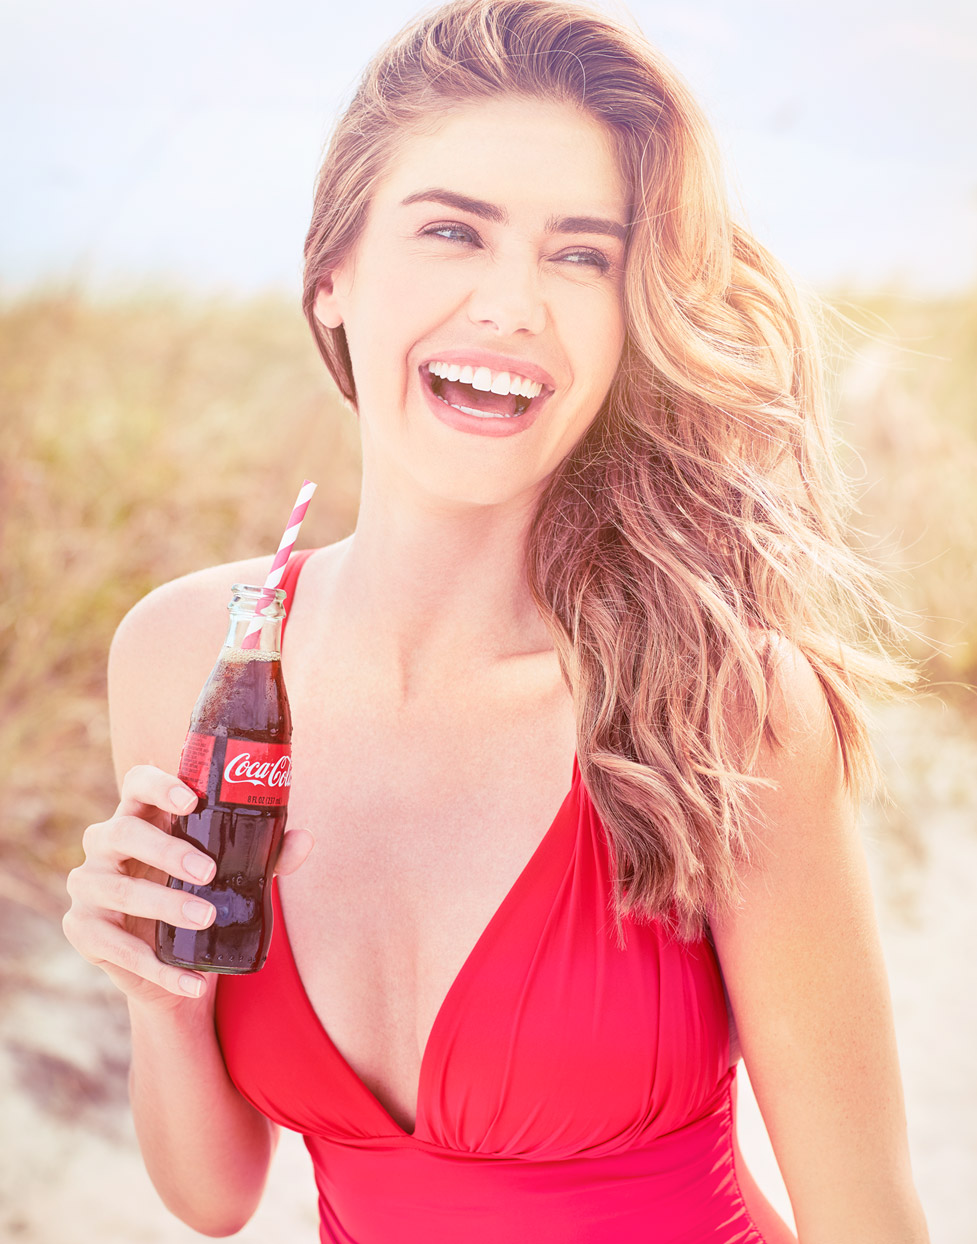 Mark DeLong - Lifestyle Photography - Woman in a red bathing suit laughing and drinking a soda